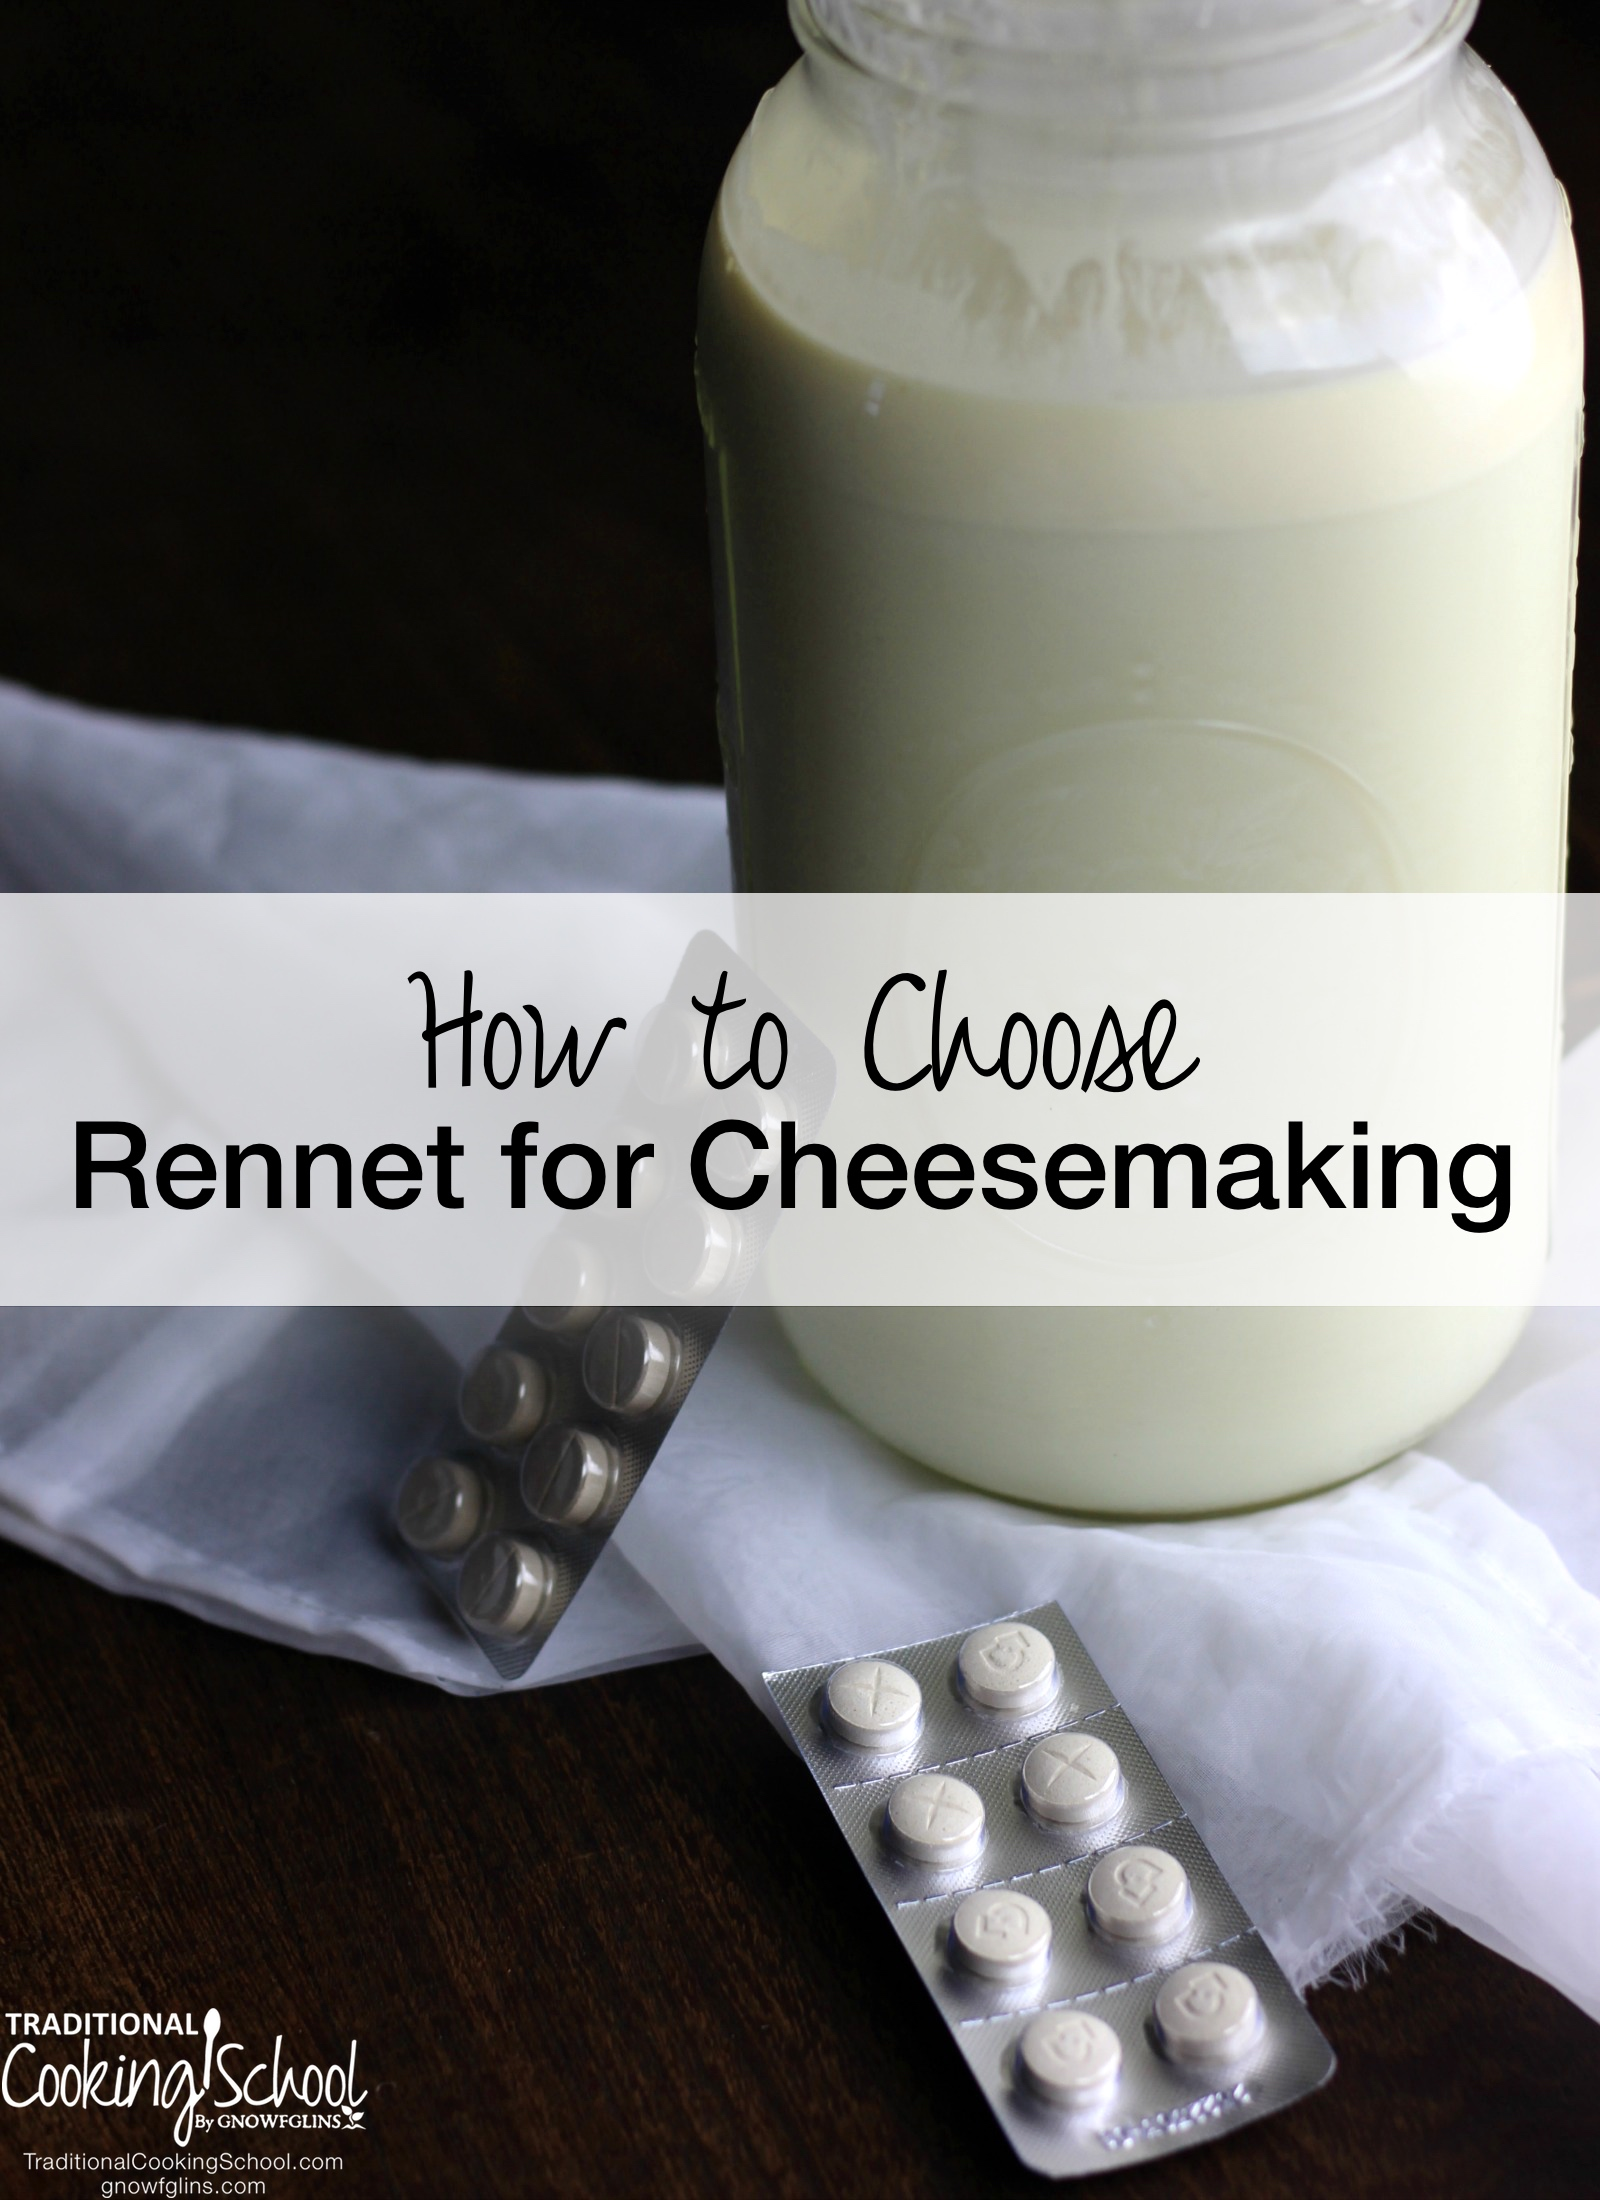 How to Choose Rennet for Cheesemaking | Rennet is an essential ingredient in most cheesemaking. It is widely available online, although most of it is not sustainably sourced. Between GMOs and harmful preservatives, it takes a bit of sleuthing to find the best. Here are several factors to keep in mind when choosing rennet for your cheesemaking. | TraditionalCookingSchool.com